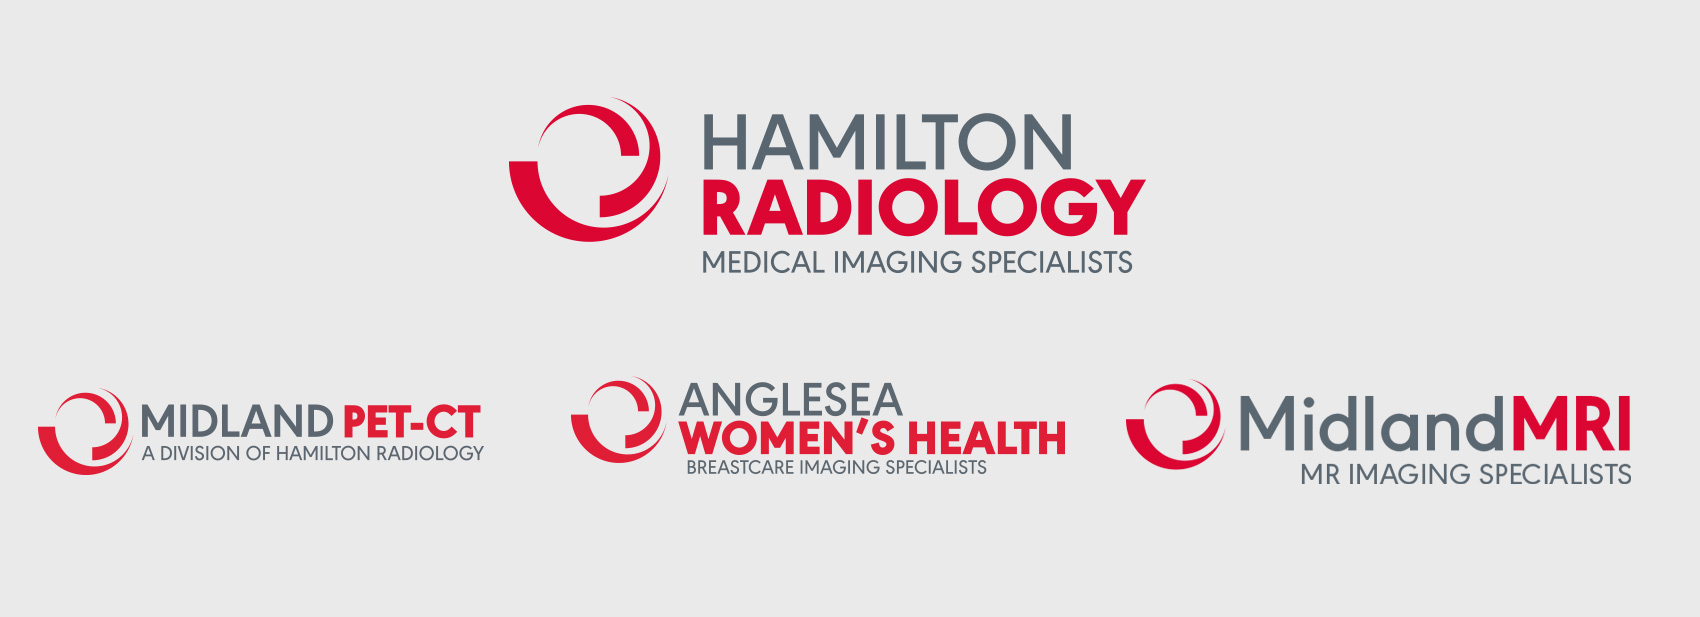 Hamilton Radiology Group Logos